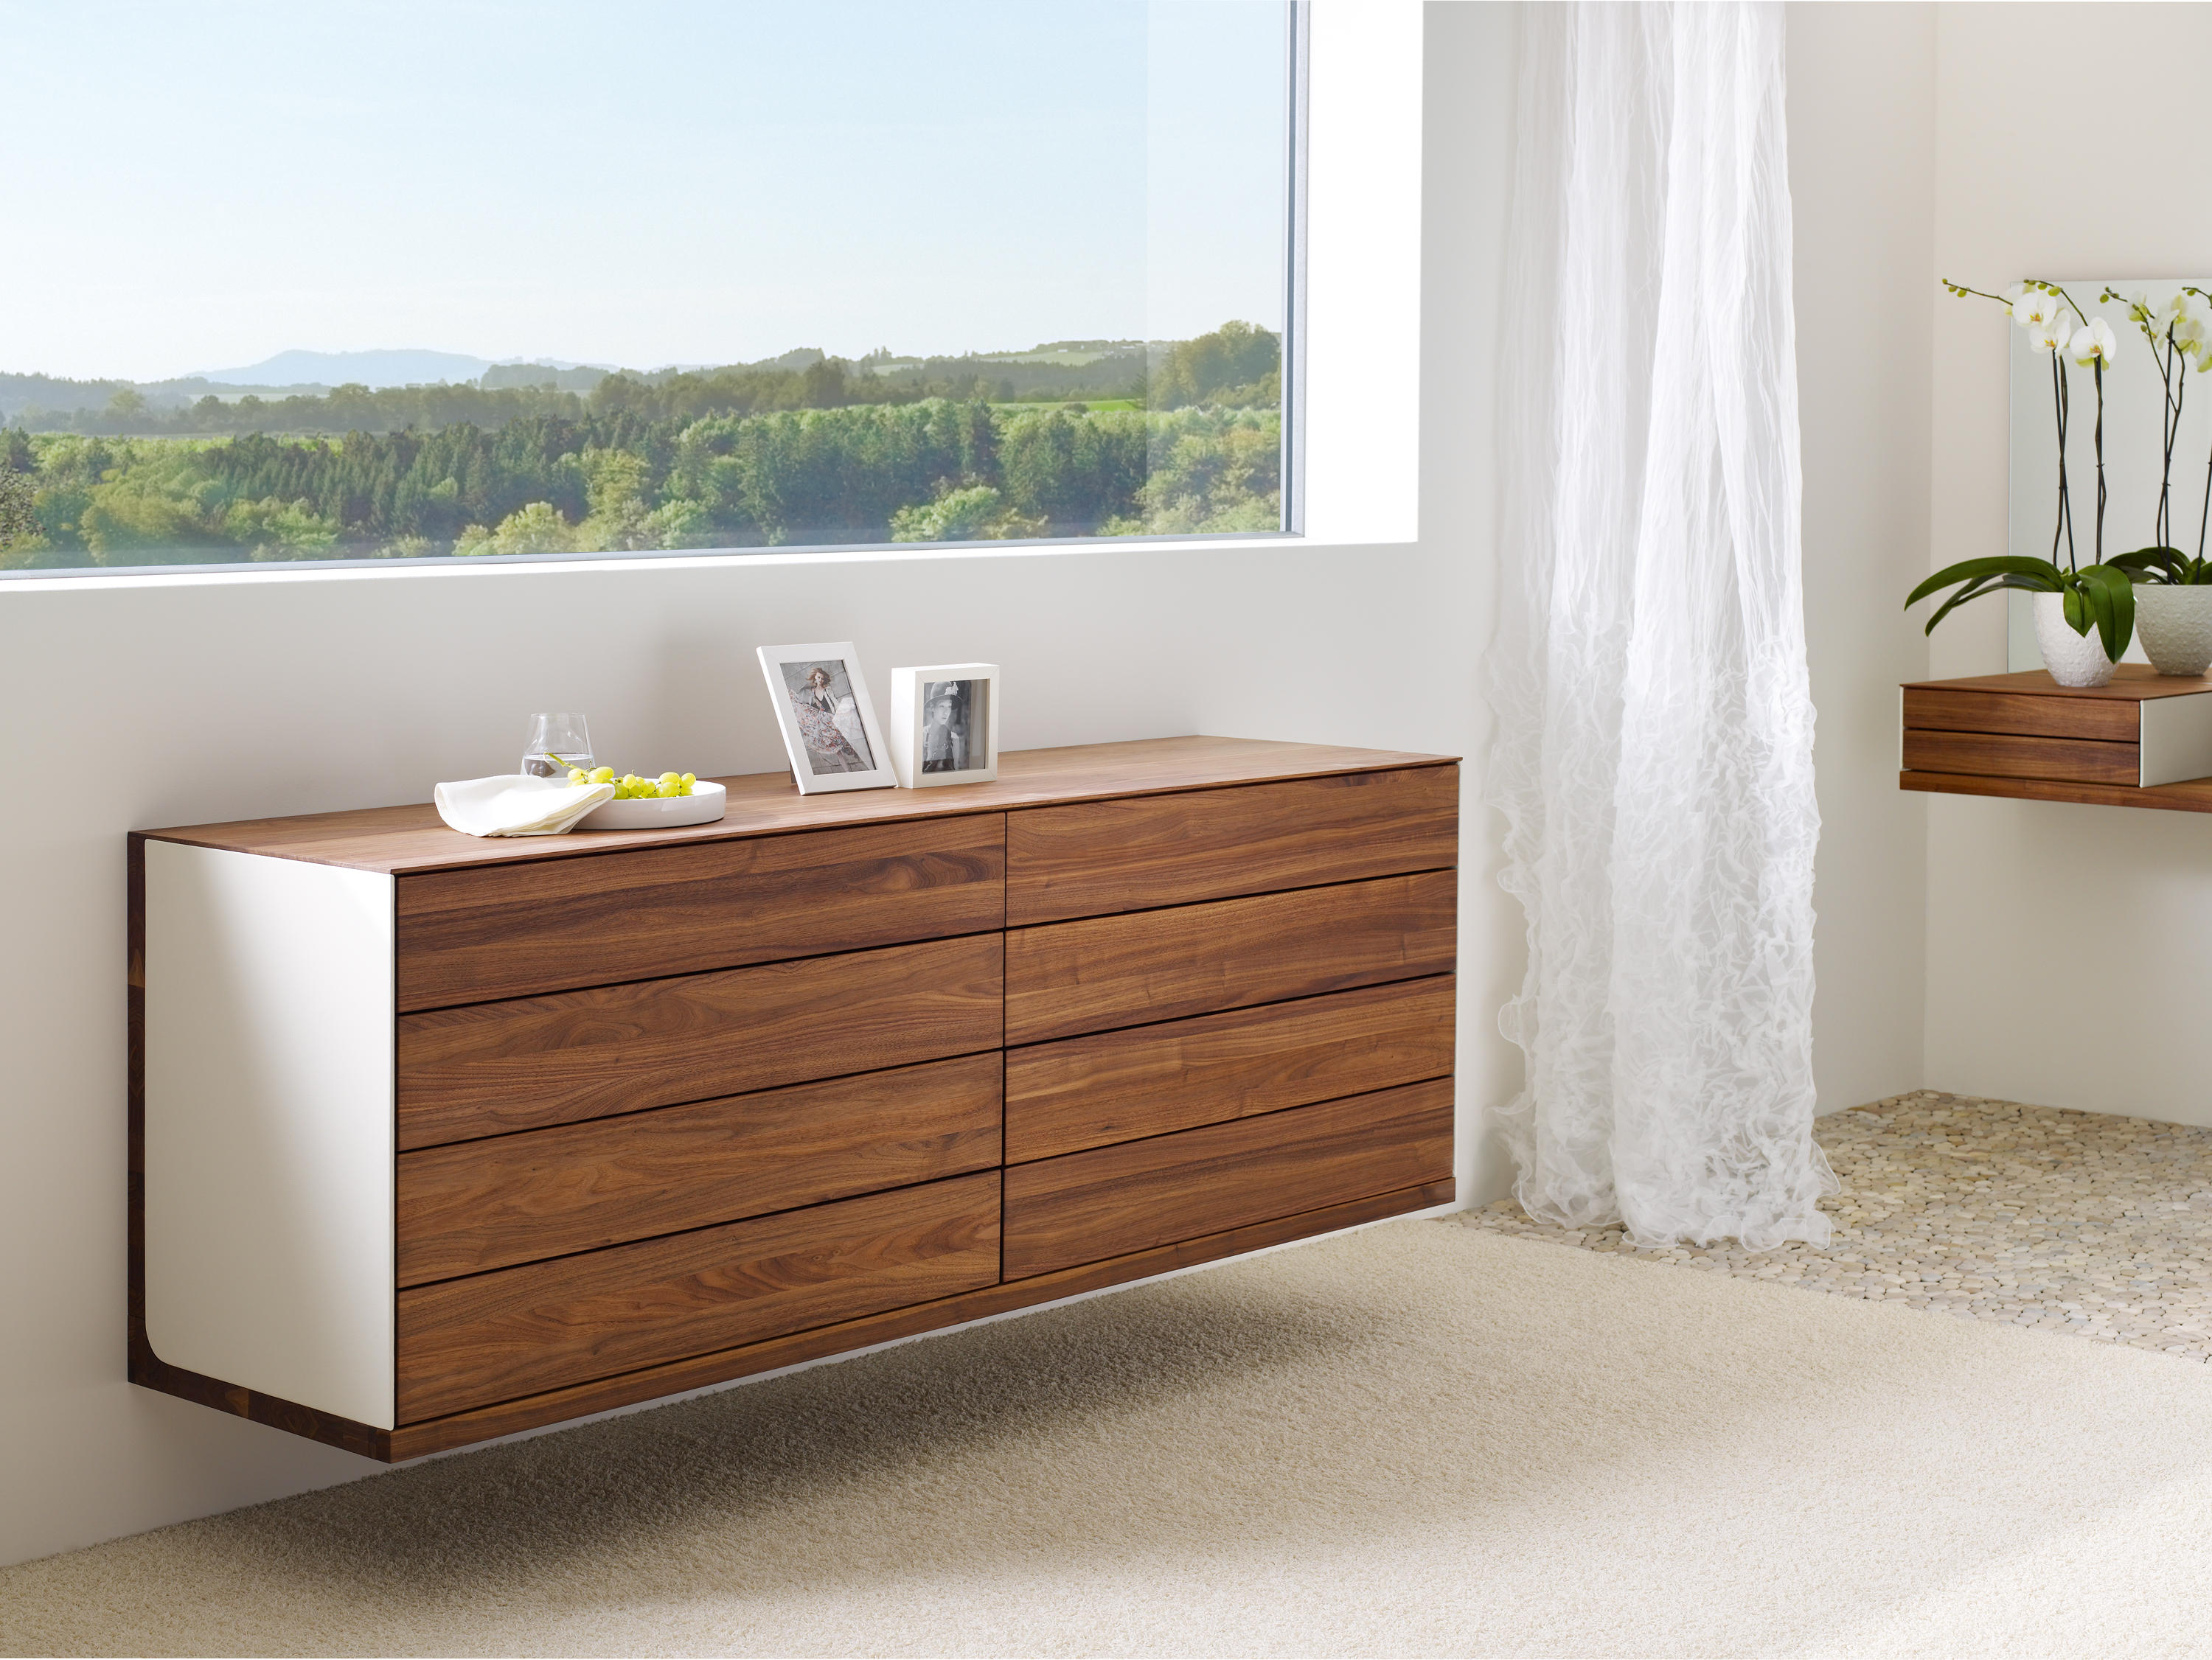 Riletto Kommode Sideboards Kommoden Von Team 7 Architonic